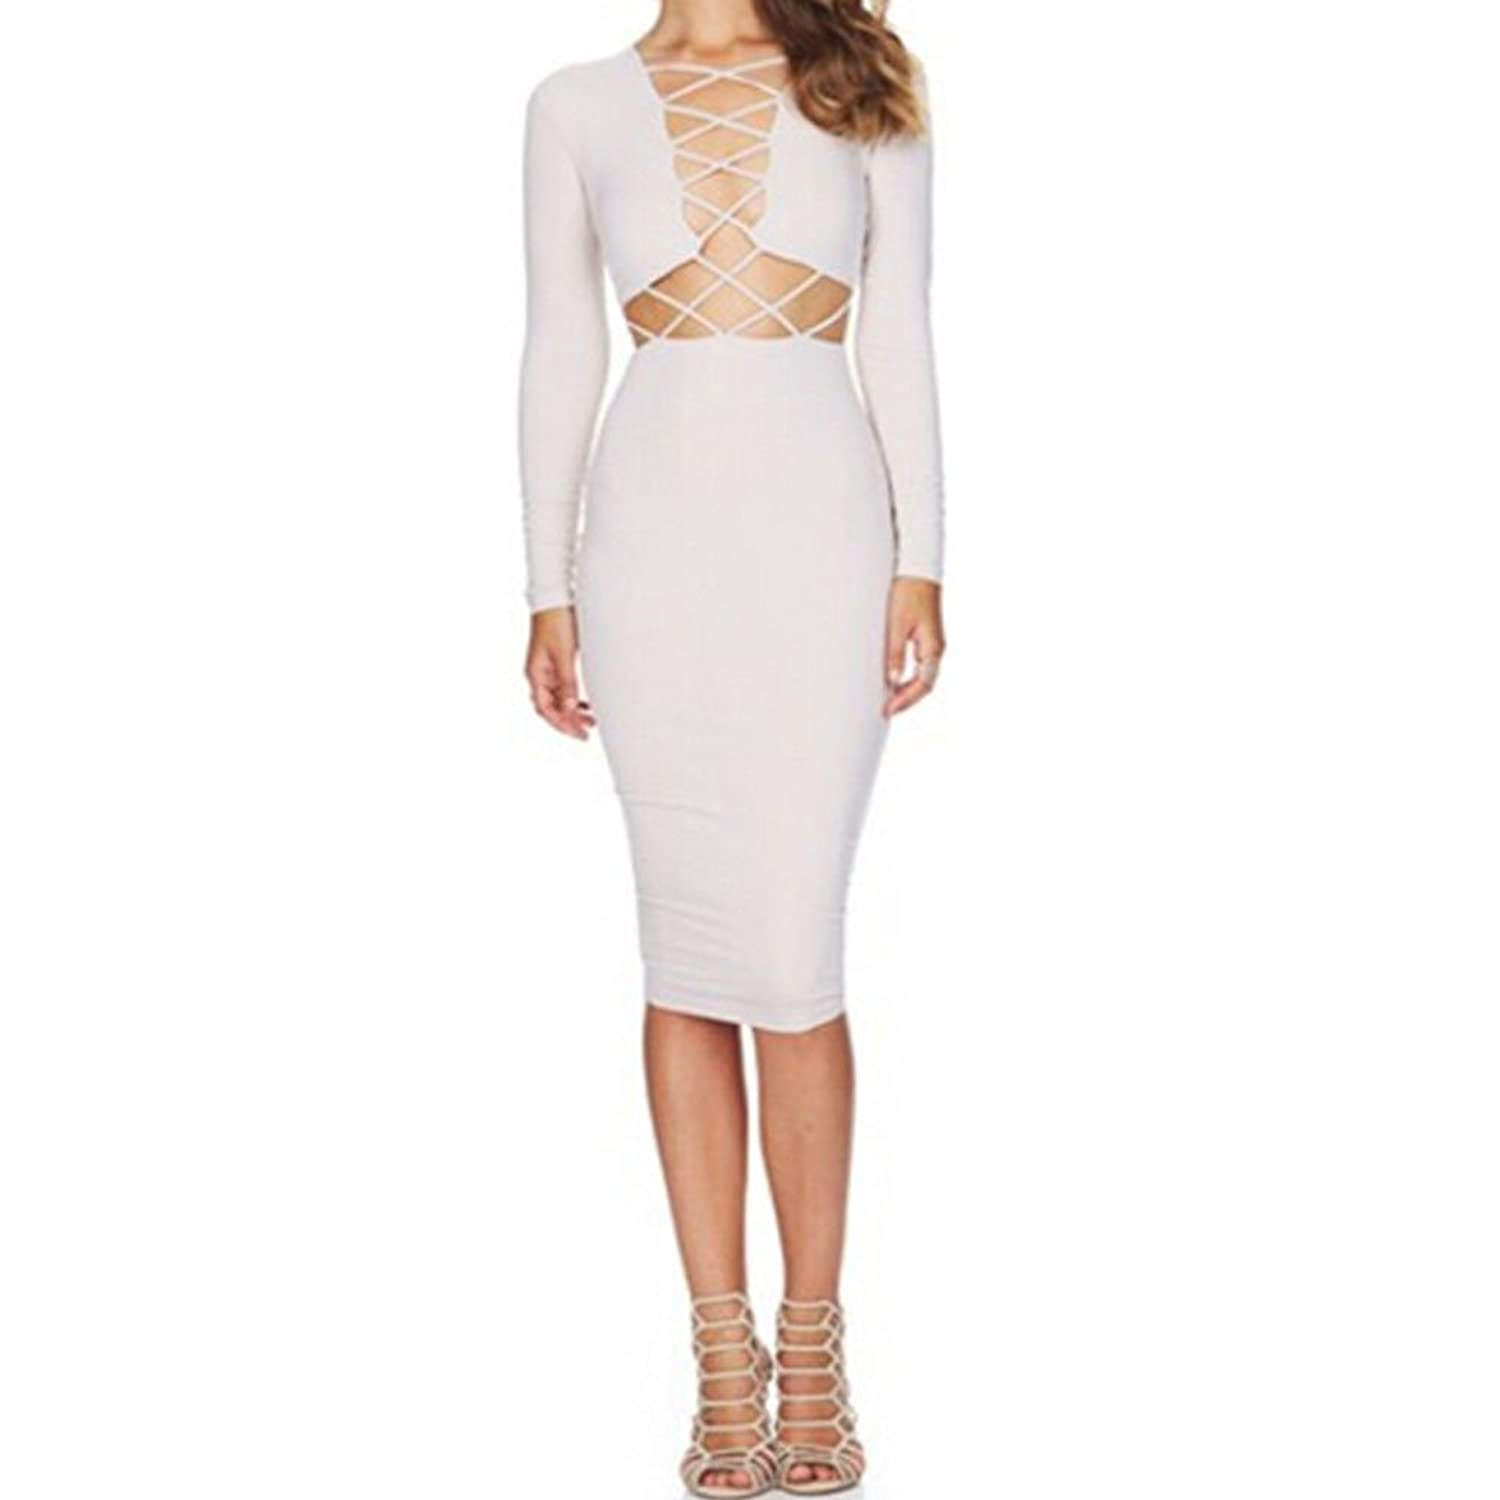 Lanrui Damen Club Bandage Dress Kleid